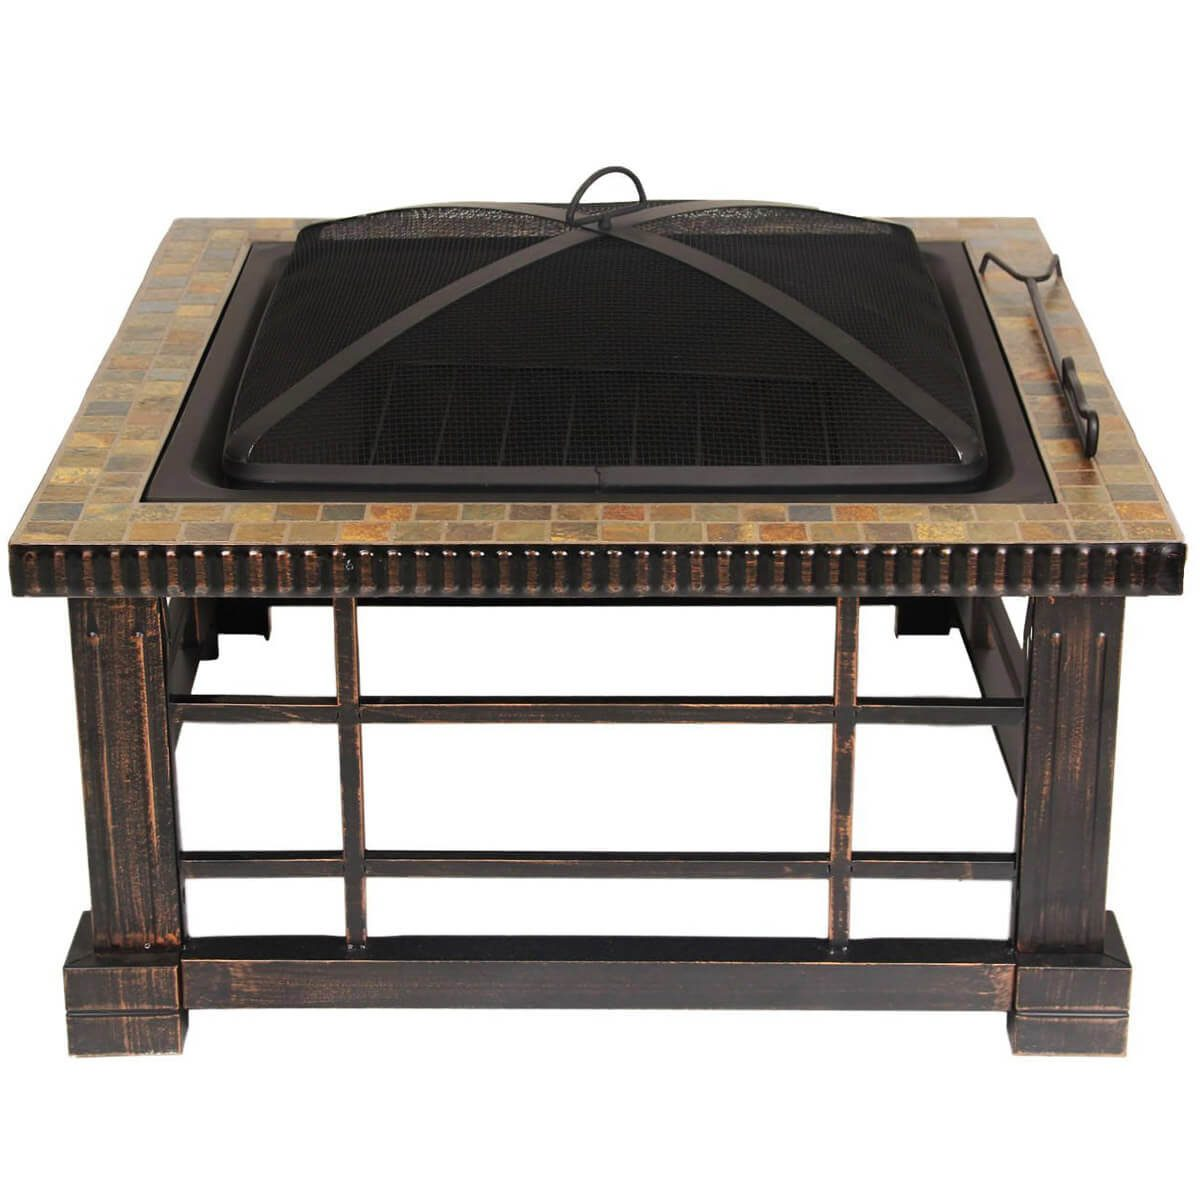 Patio Watcher Fire Pit Fire Table